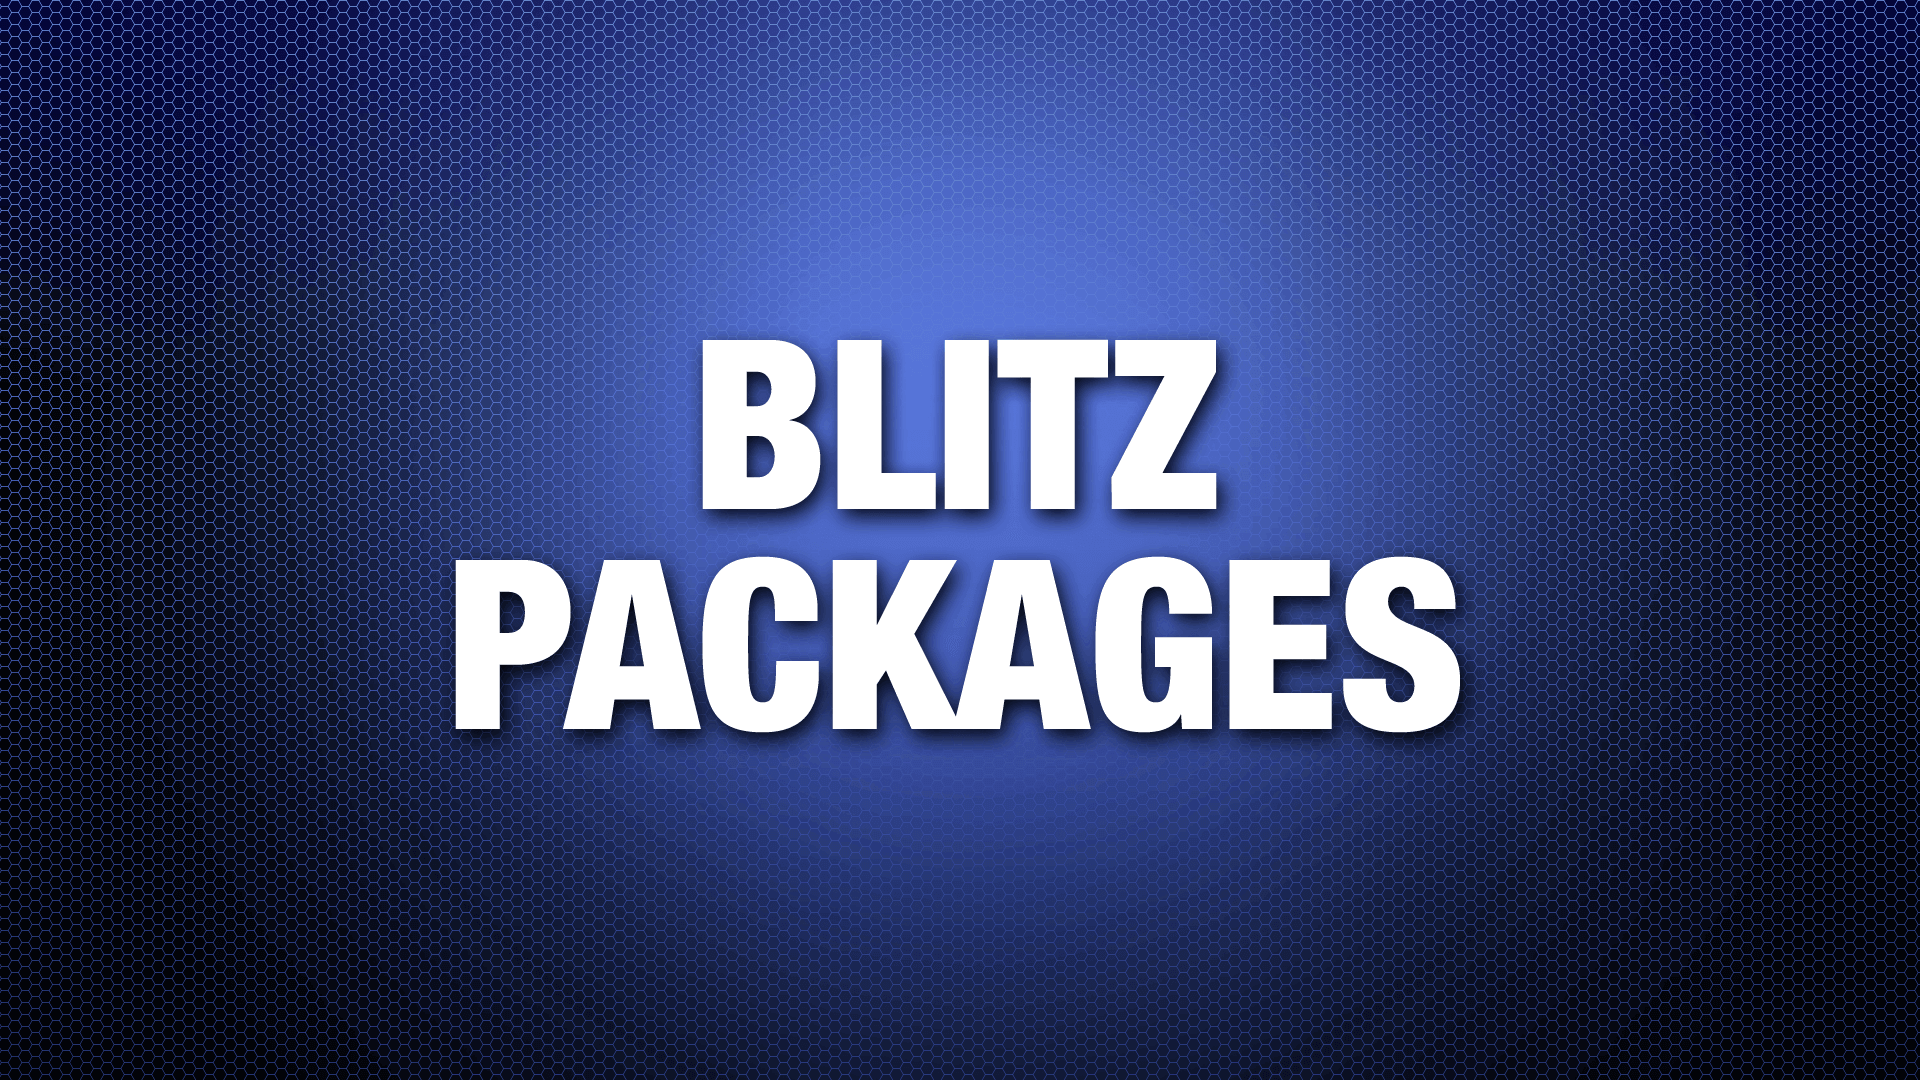 BlitzPackages